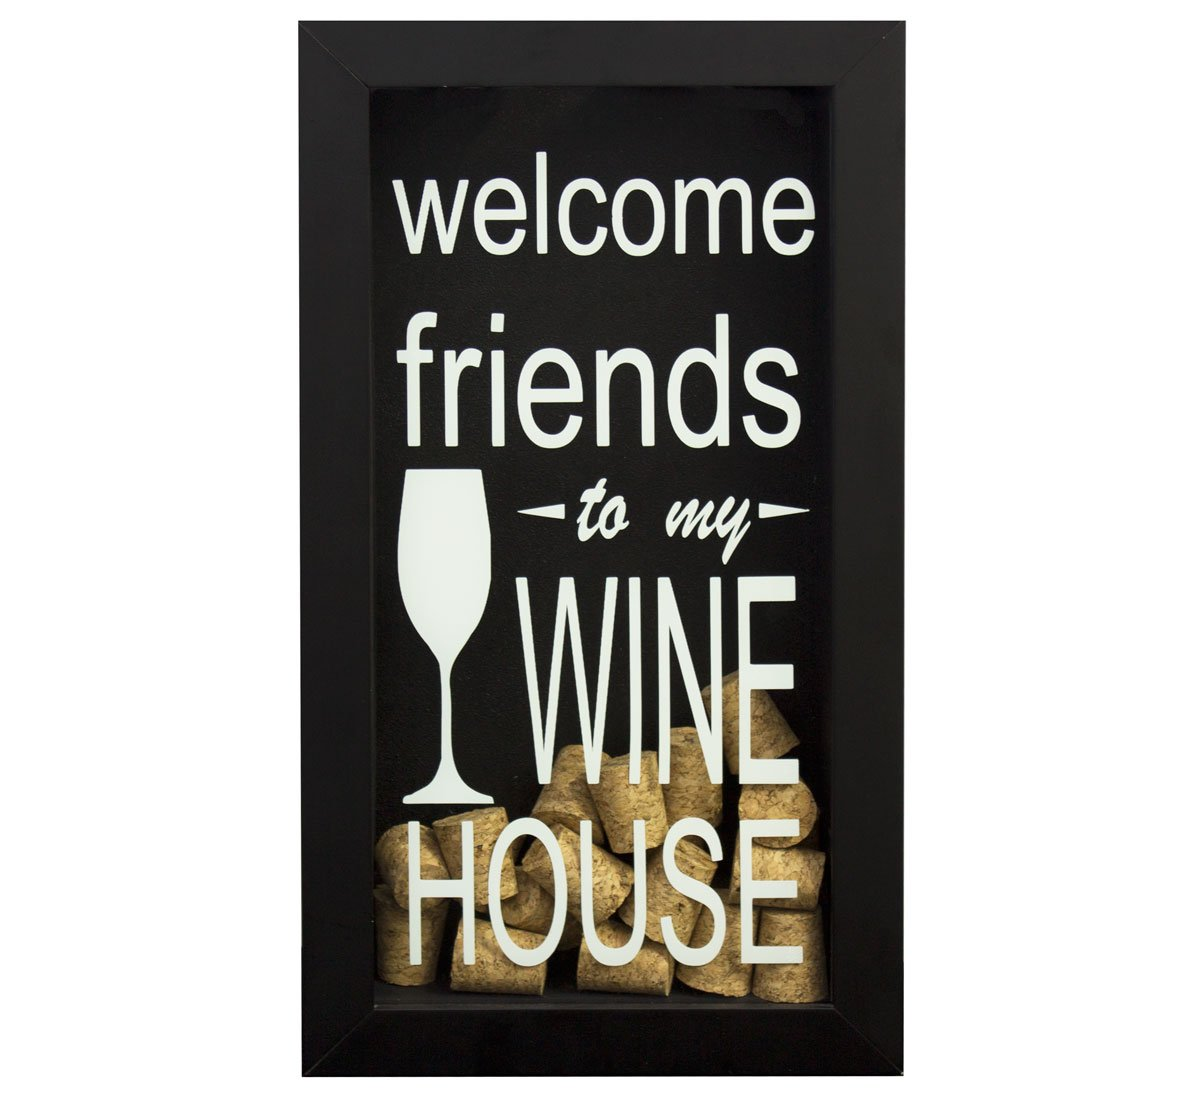 ca86e75c1 Quadro Decorativo Porta Rolhas Welcome Friends To My Wine House ...